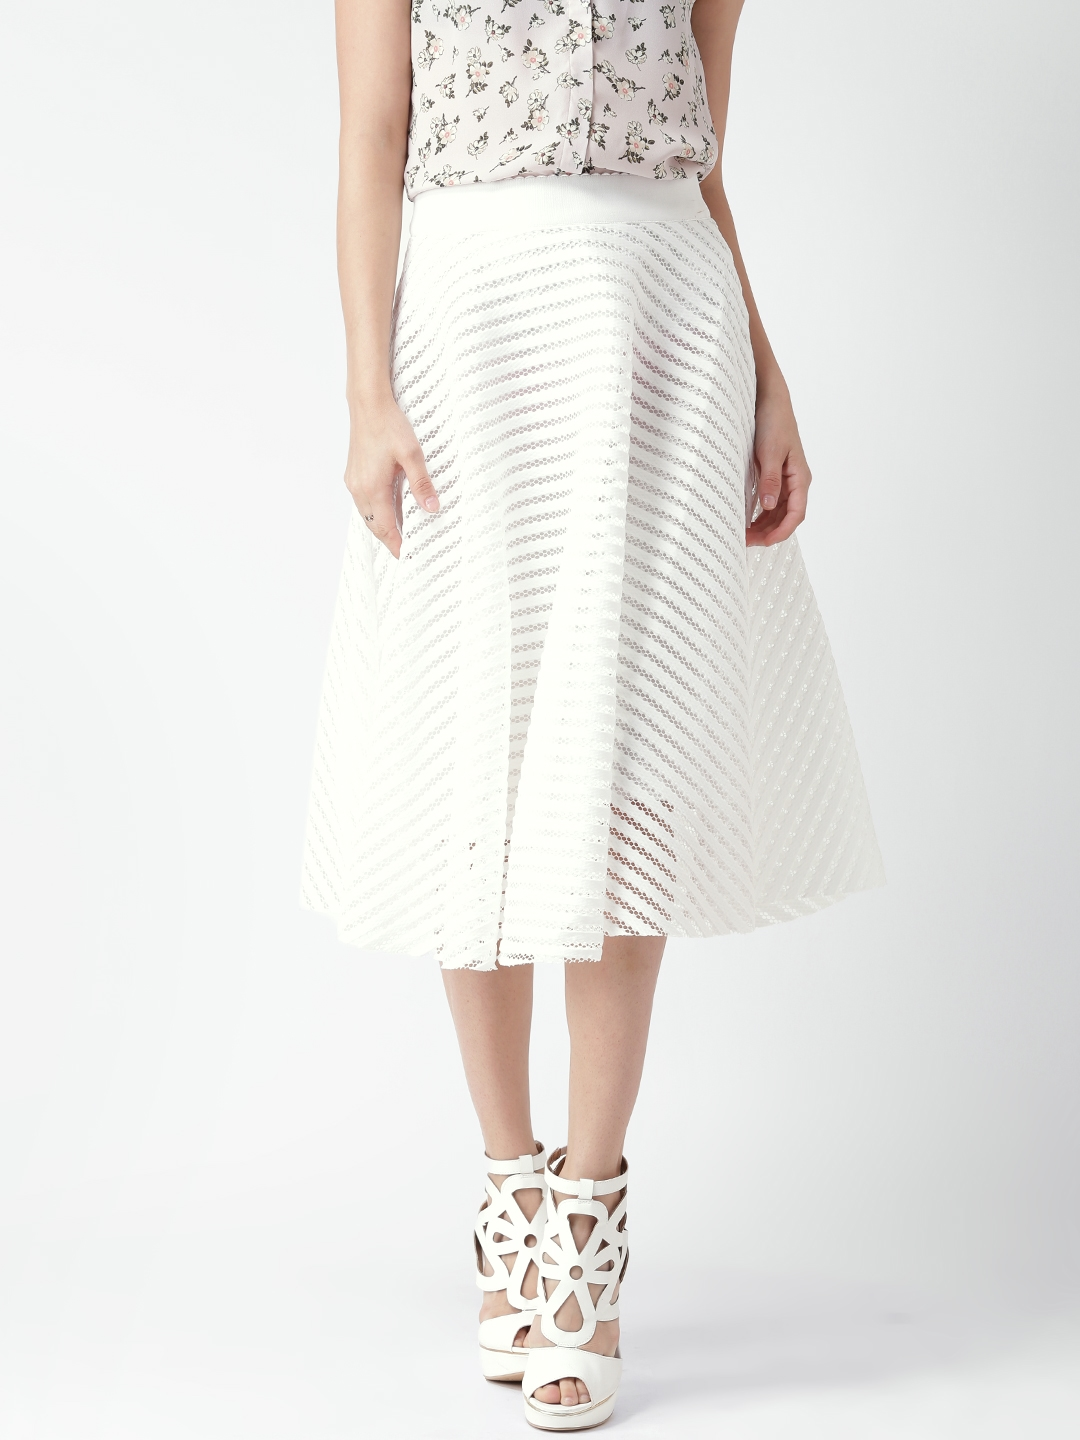 1e99ca77a Buy New Look White Self Striped A Line Midi Skirt - Skirts for Women  1302129   Myntra